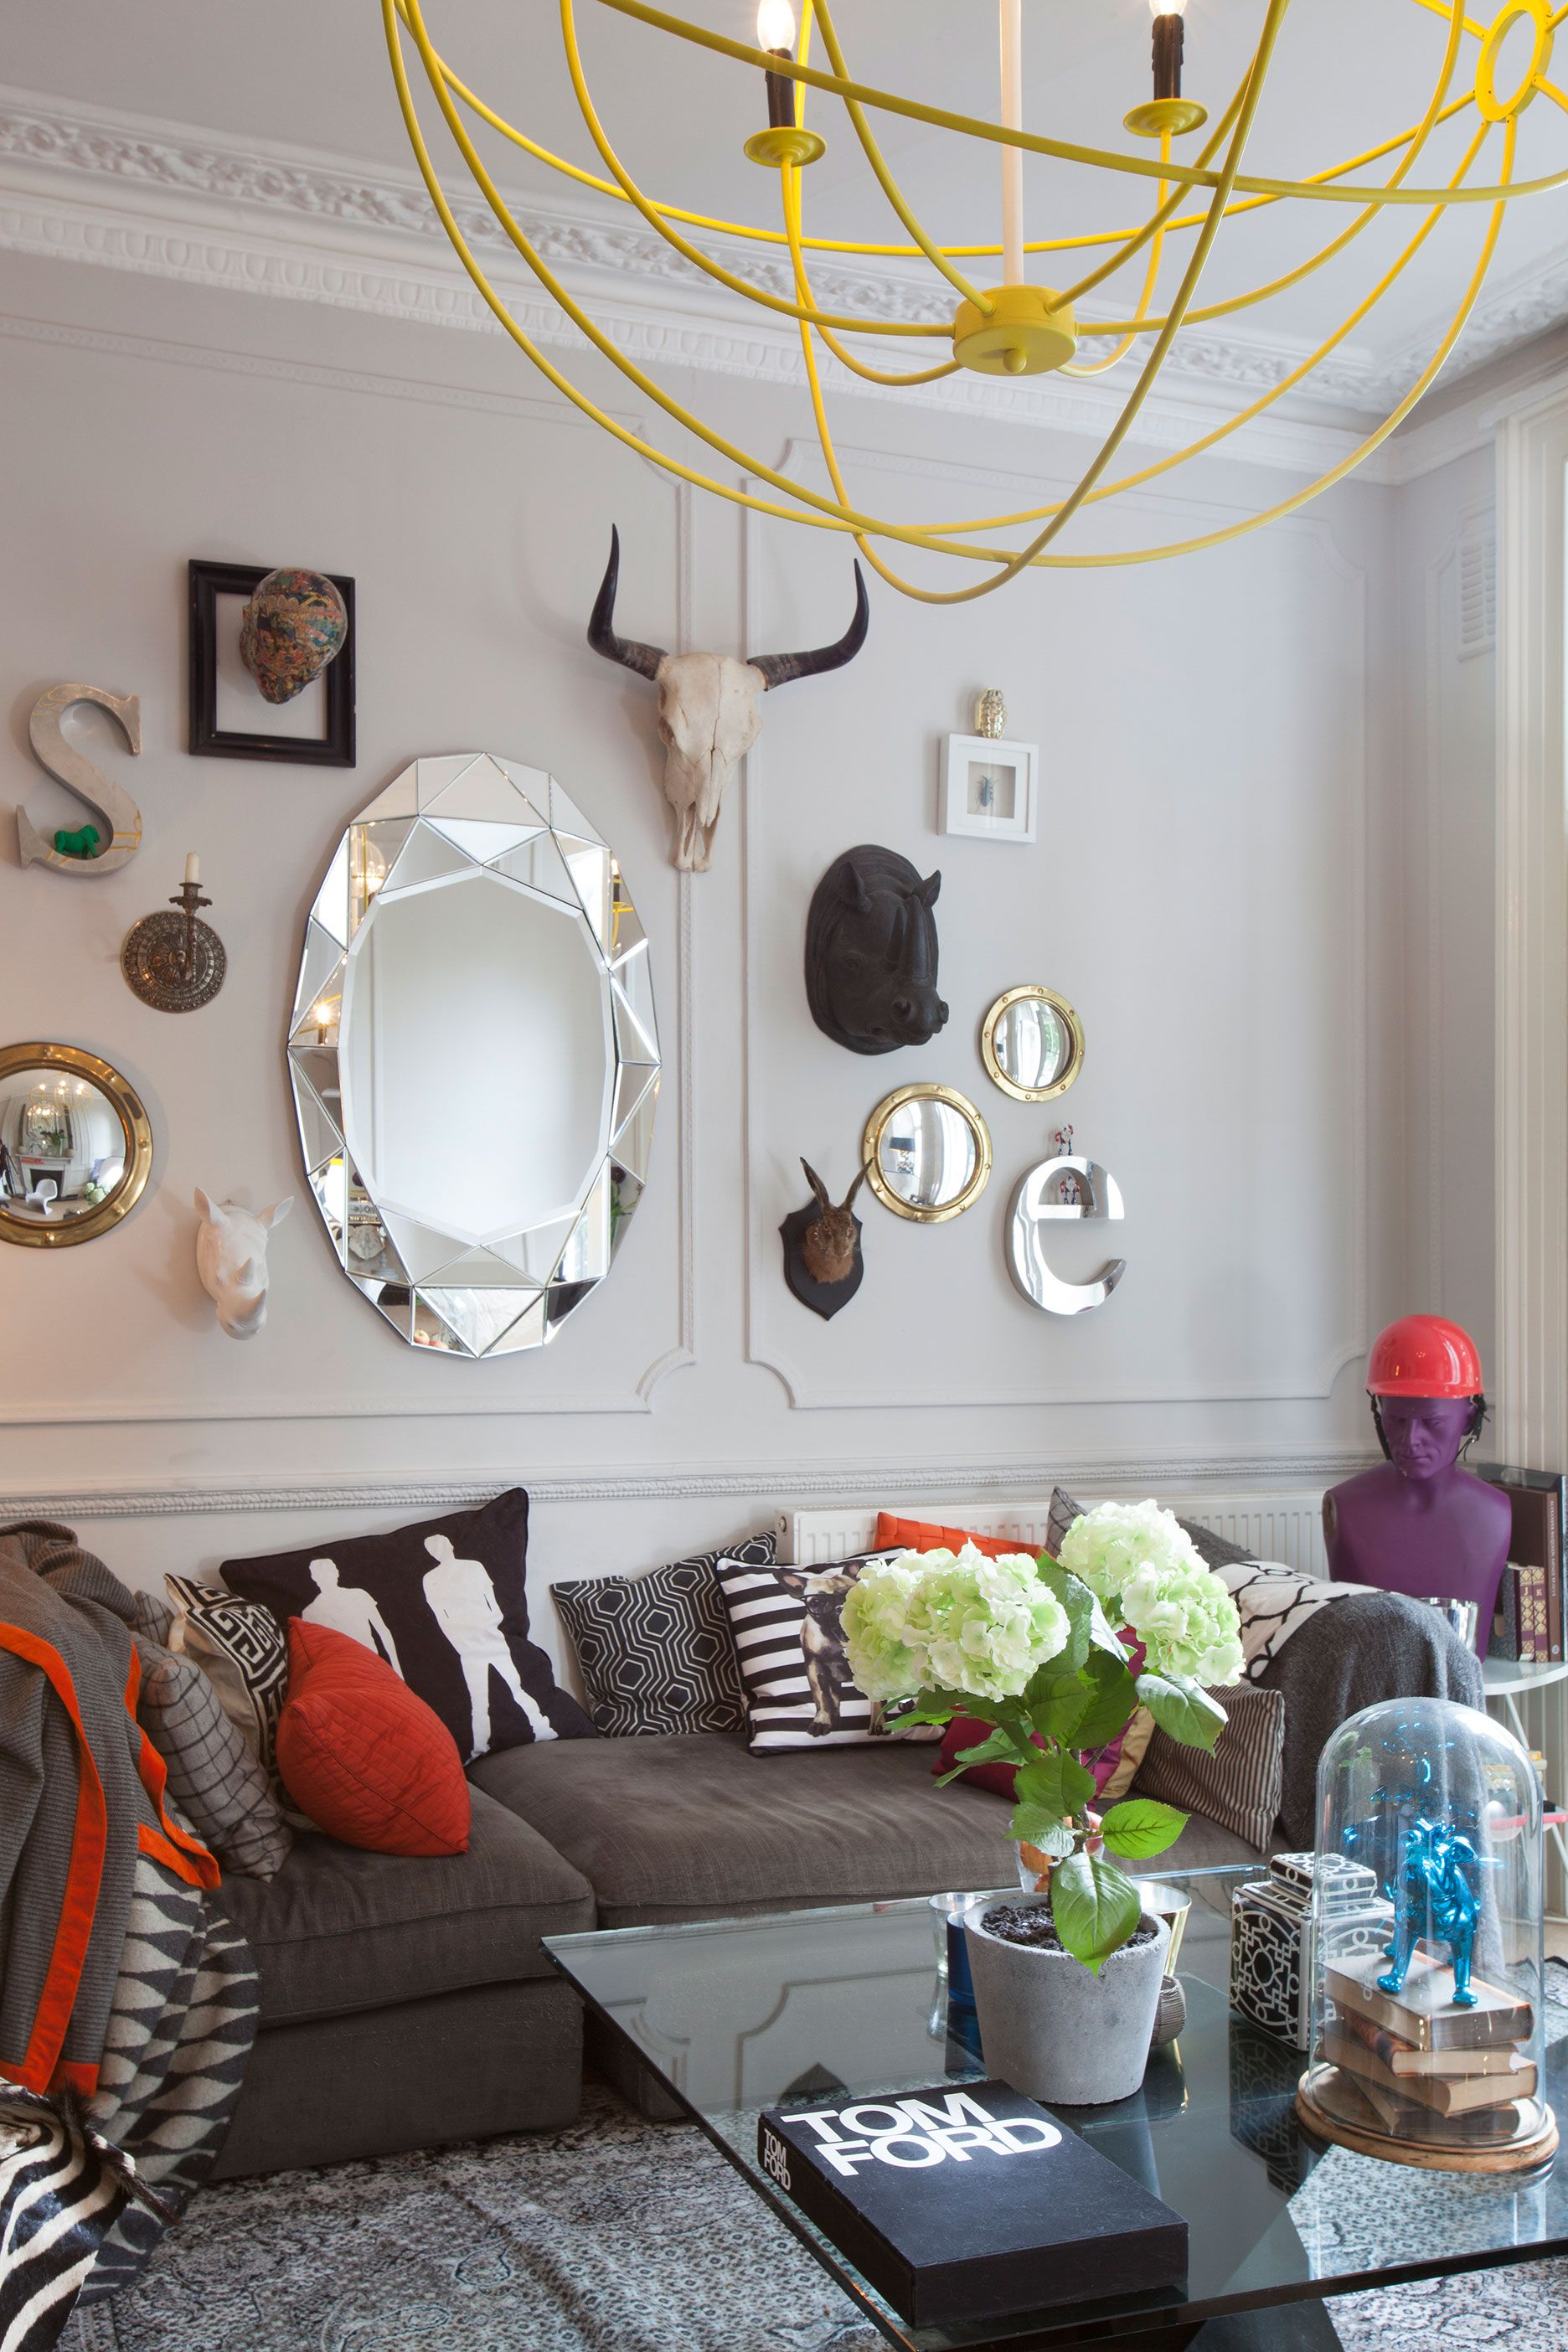 Eclectic sitting room with neon yellow chandelier